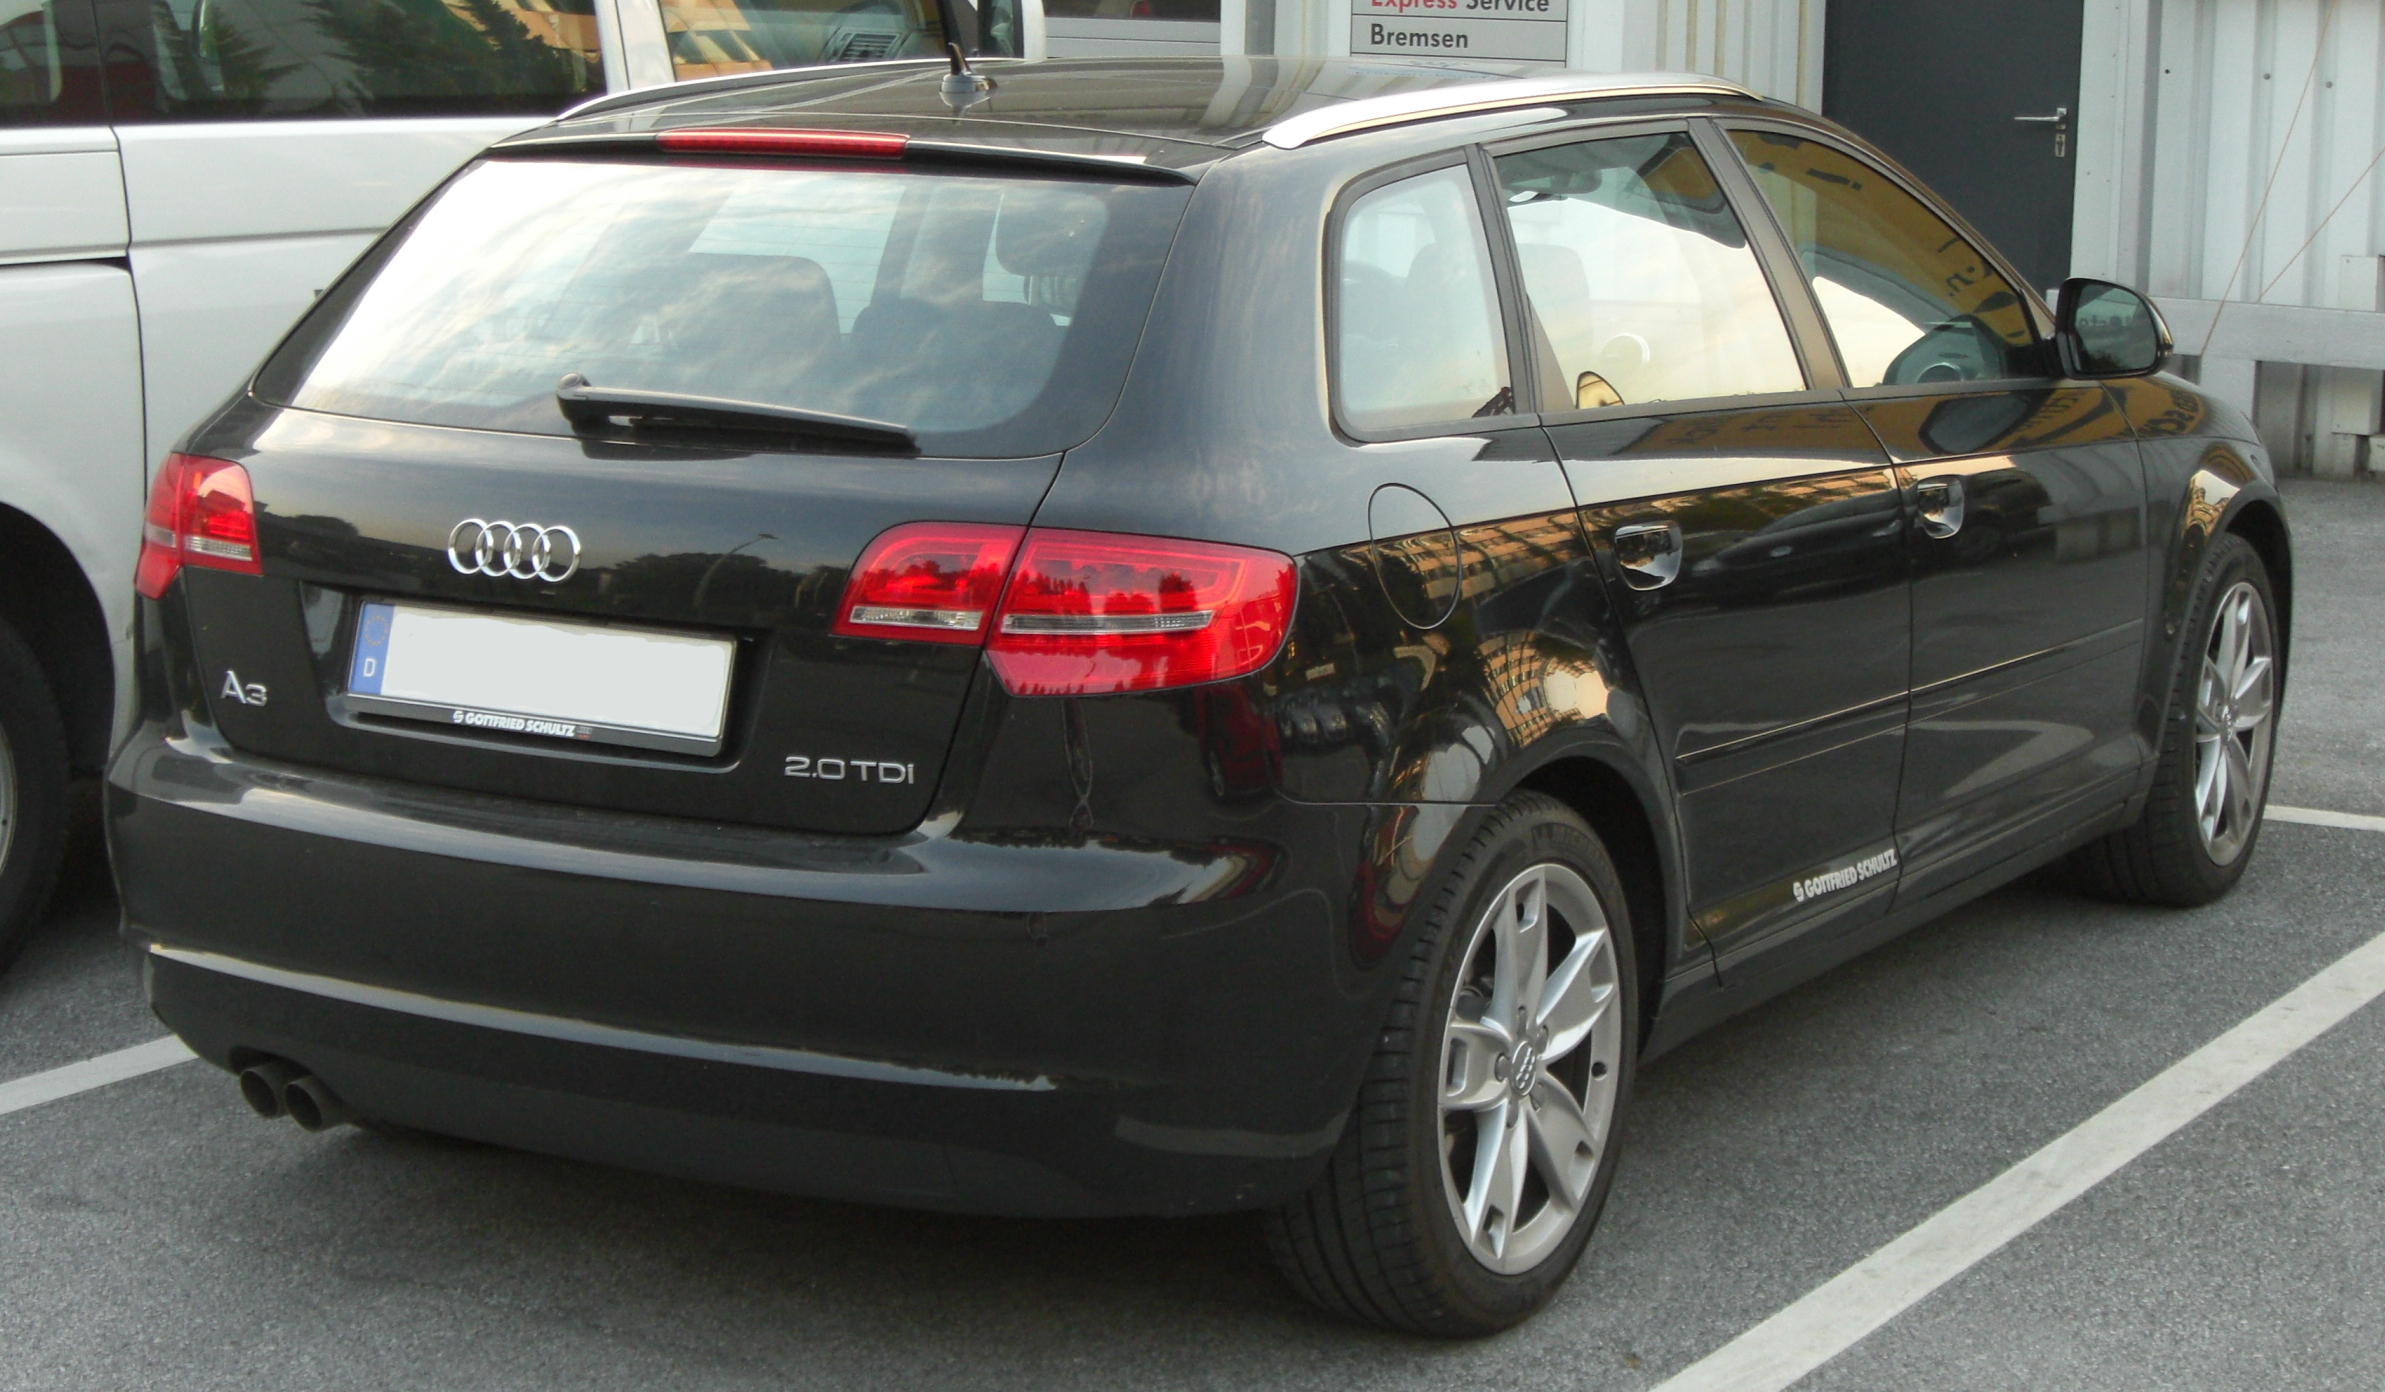 file audi a3 sportback 2 0 tdi facelift rear jpg wikimedia commons. Black Bedroom Furniture Sets. Home Design Ideas